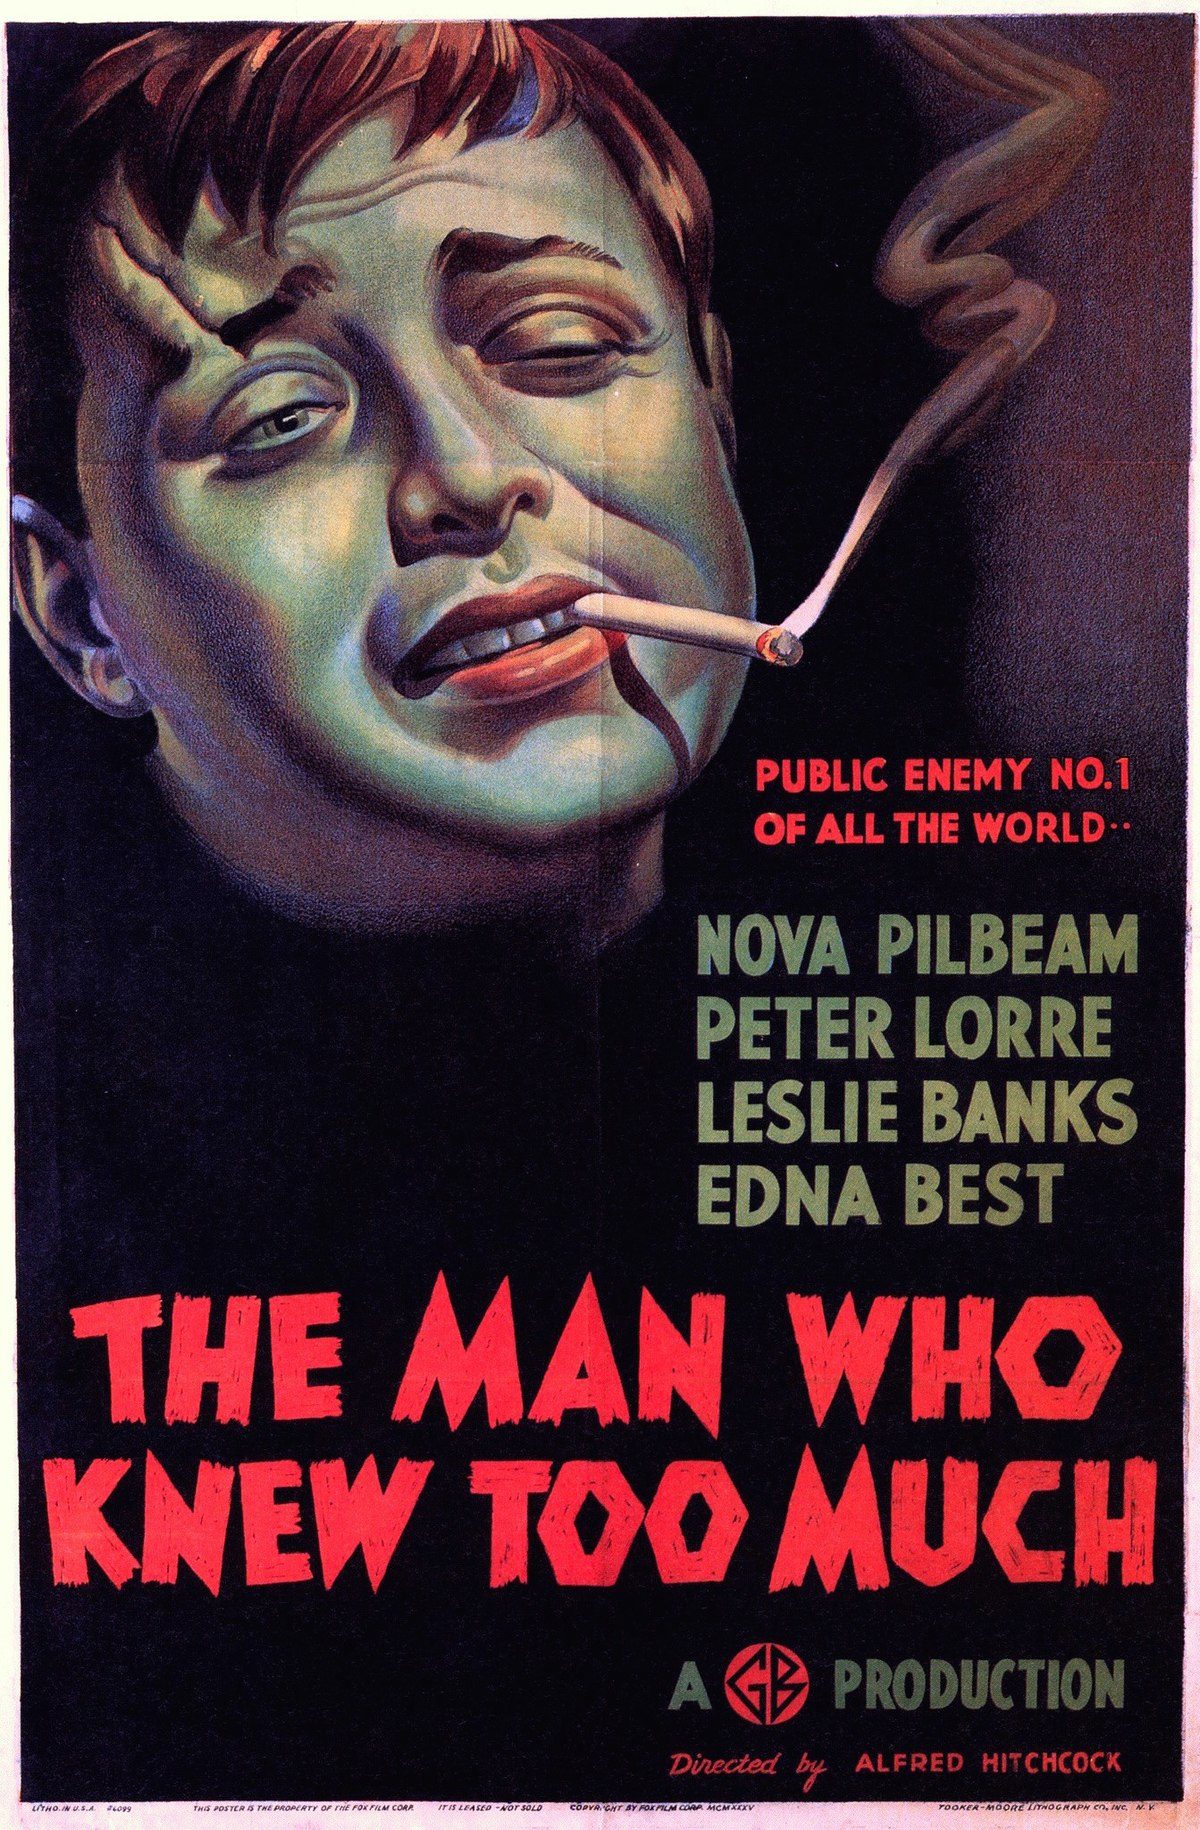 The Man Who Knew Too Much (1934 film) - Wikipedia